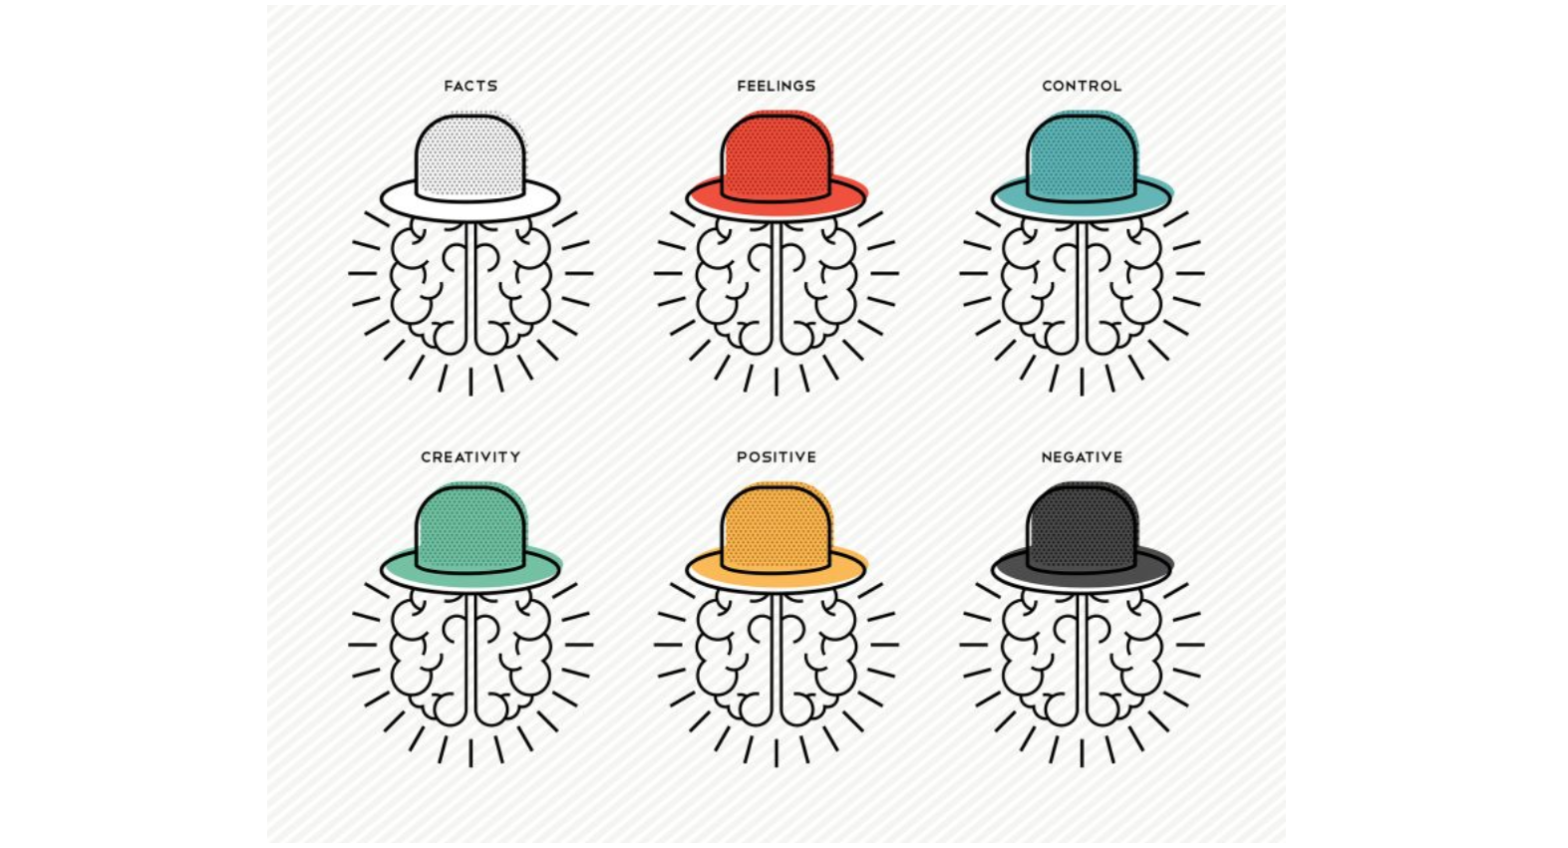 Book Review: Six Thinking Hats by Edward De Bono